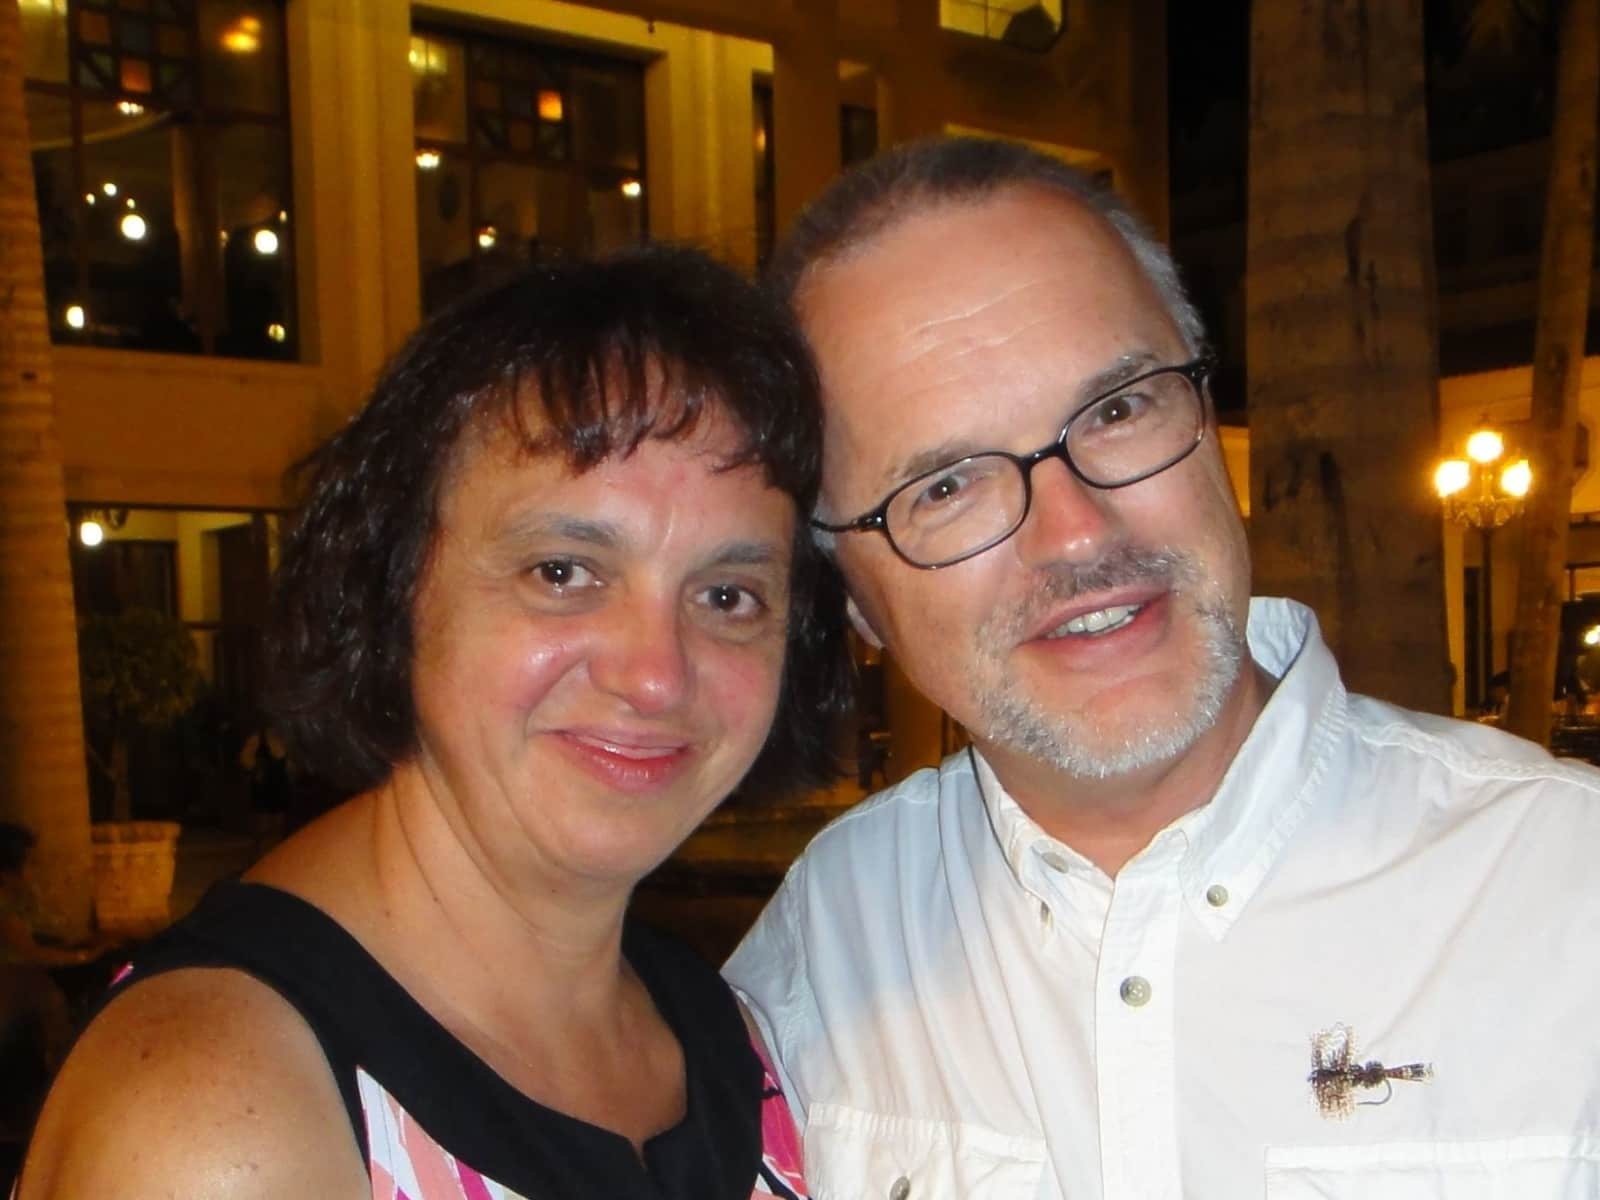 Susan & Rainer from Houston, Texas, United States